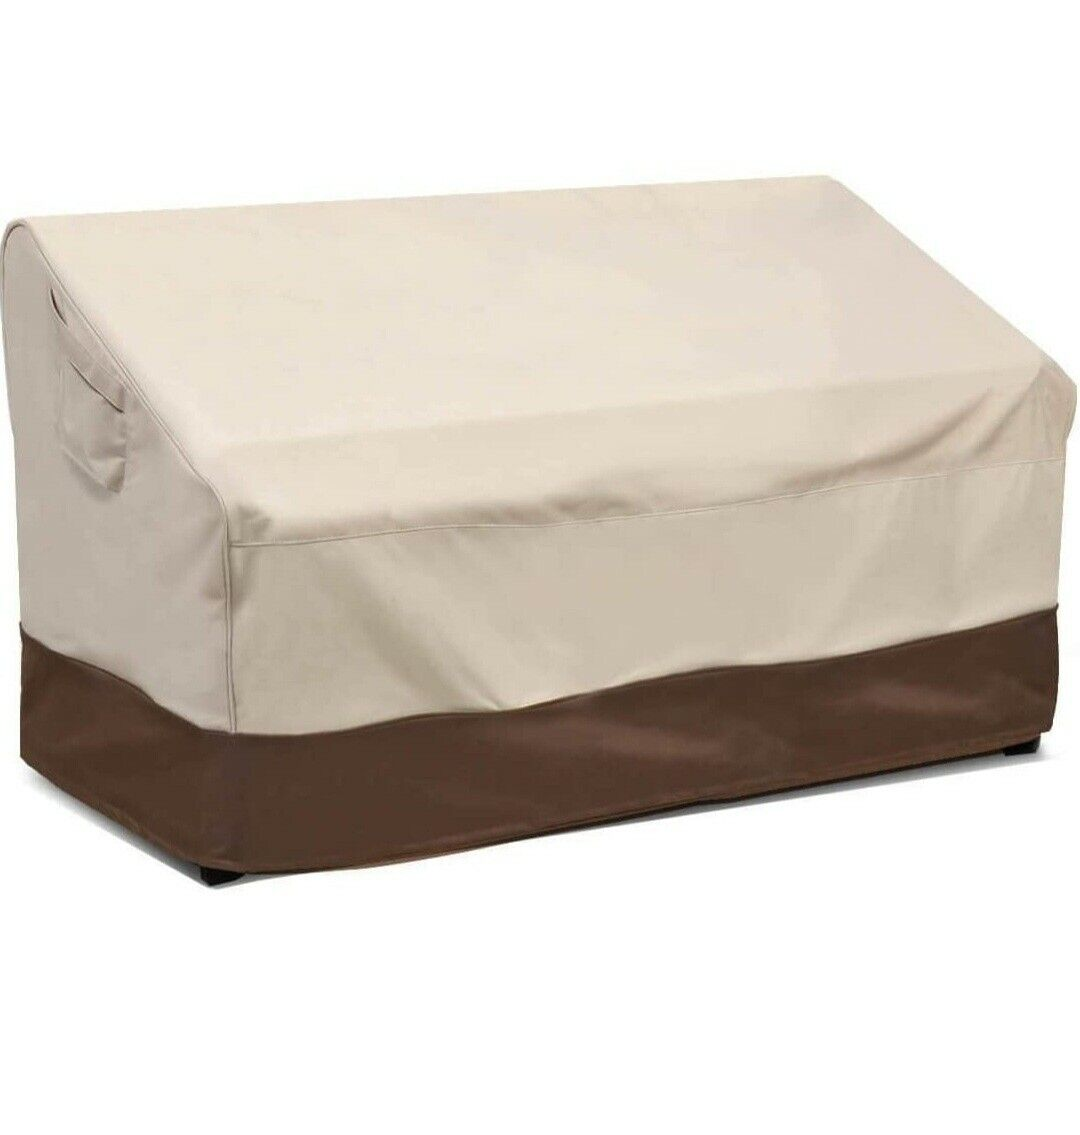 Heavy Duty and Waterproof Outdoor Lawn Patio Furniture Covers Lounge Deep Seat Cover 2 Pack - Small, Beige /& Brown Vailge Patio Chair Covers